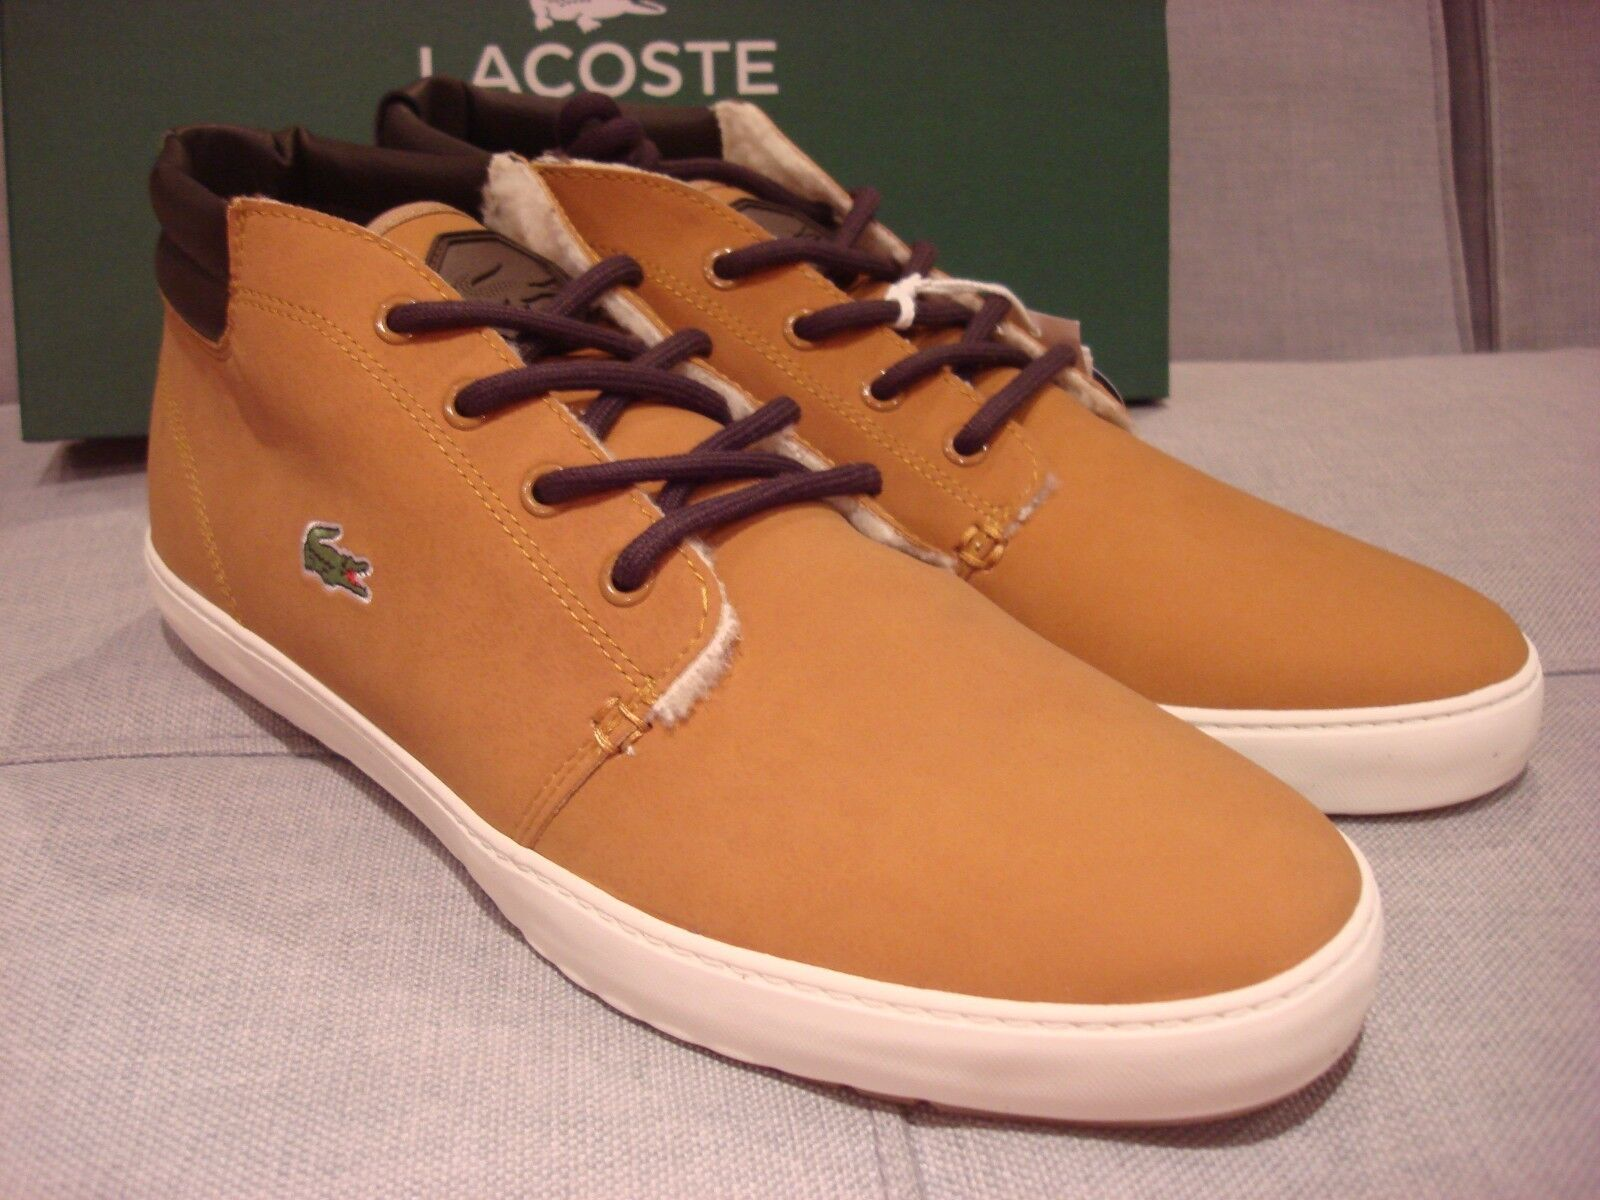 LACOSTE MEN'S AMPTHILL TERRA PUT FLEECE DARK TAN SIZE 11.5 SHOES - BRAND NEW